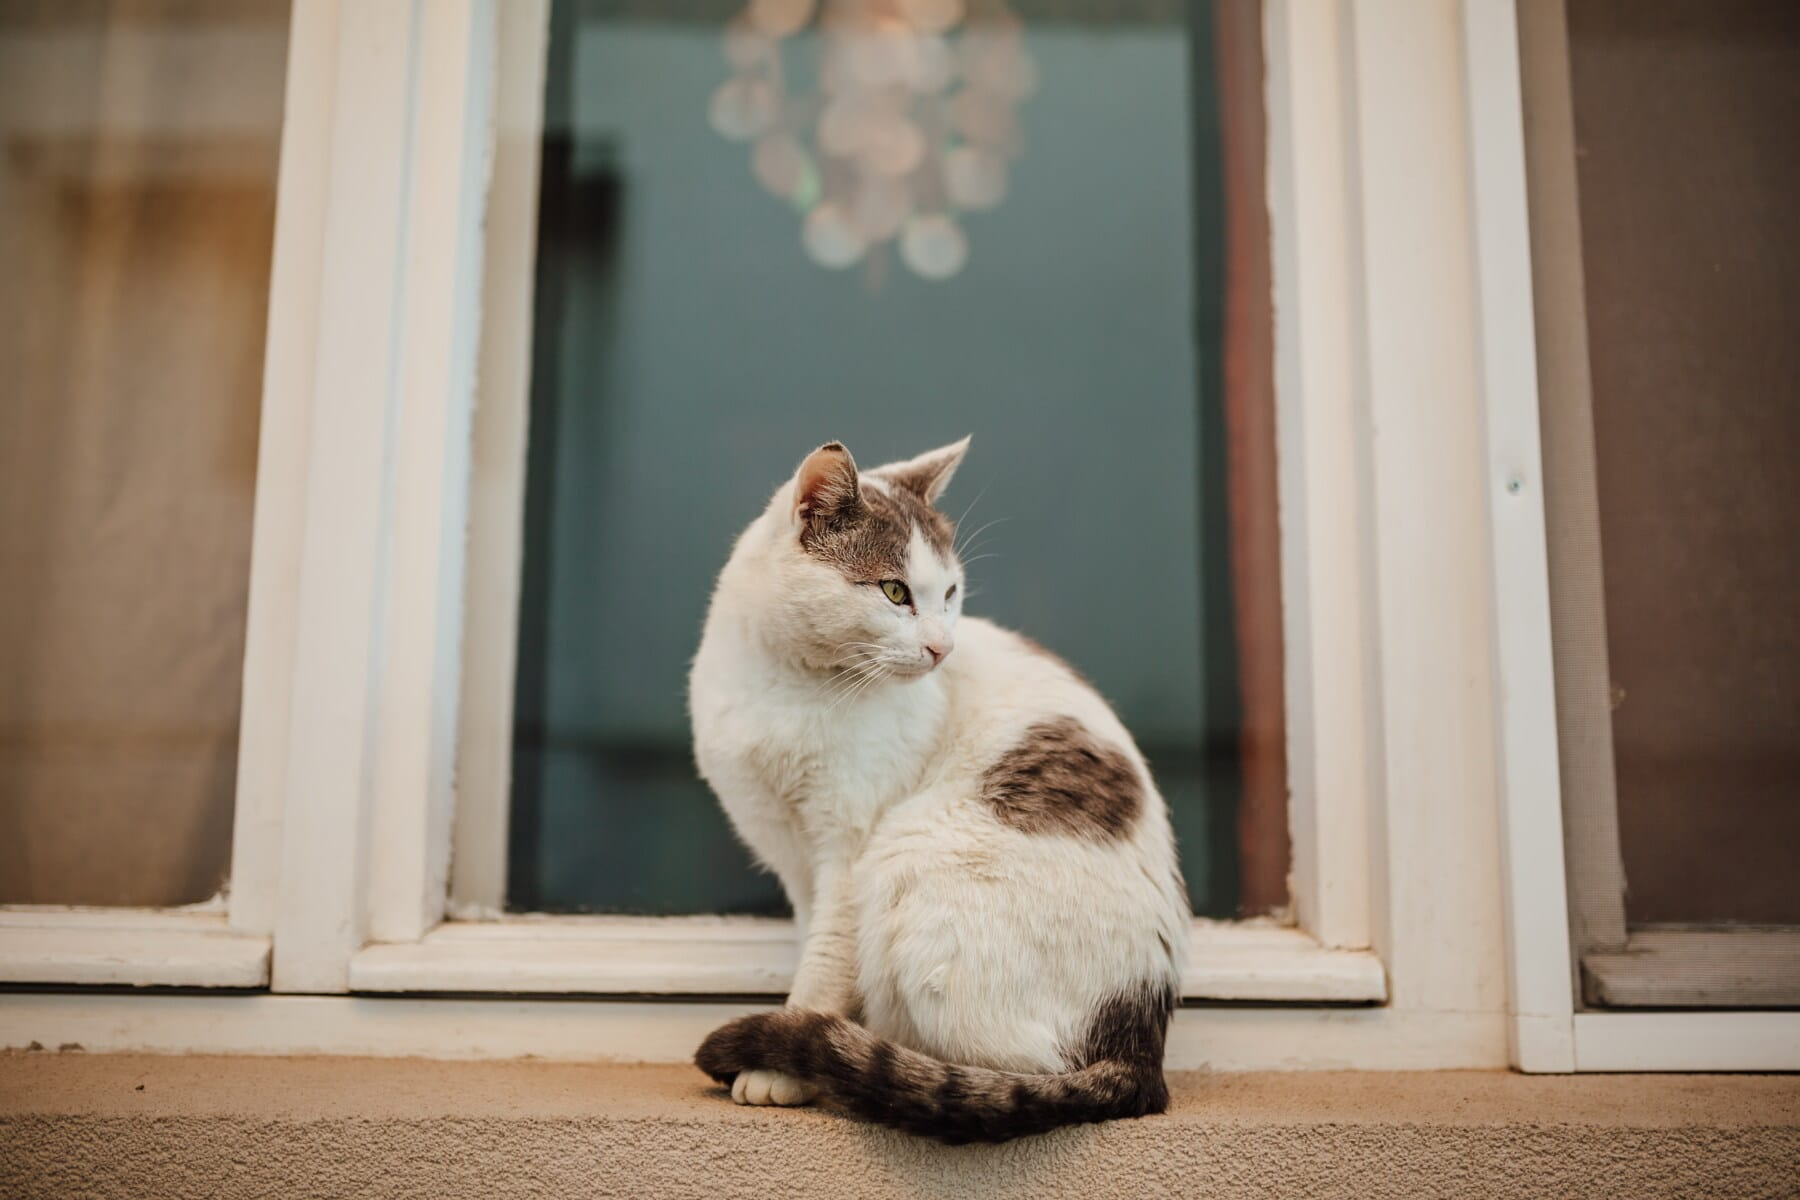 side view, kitty, domestic cat, sitting, windows, home, cat, kitten, pet, window